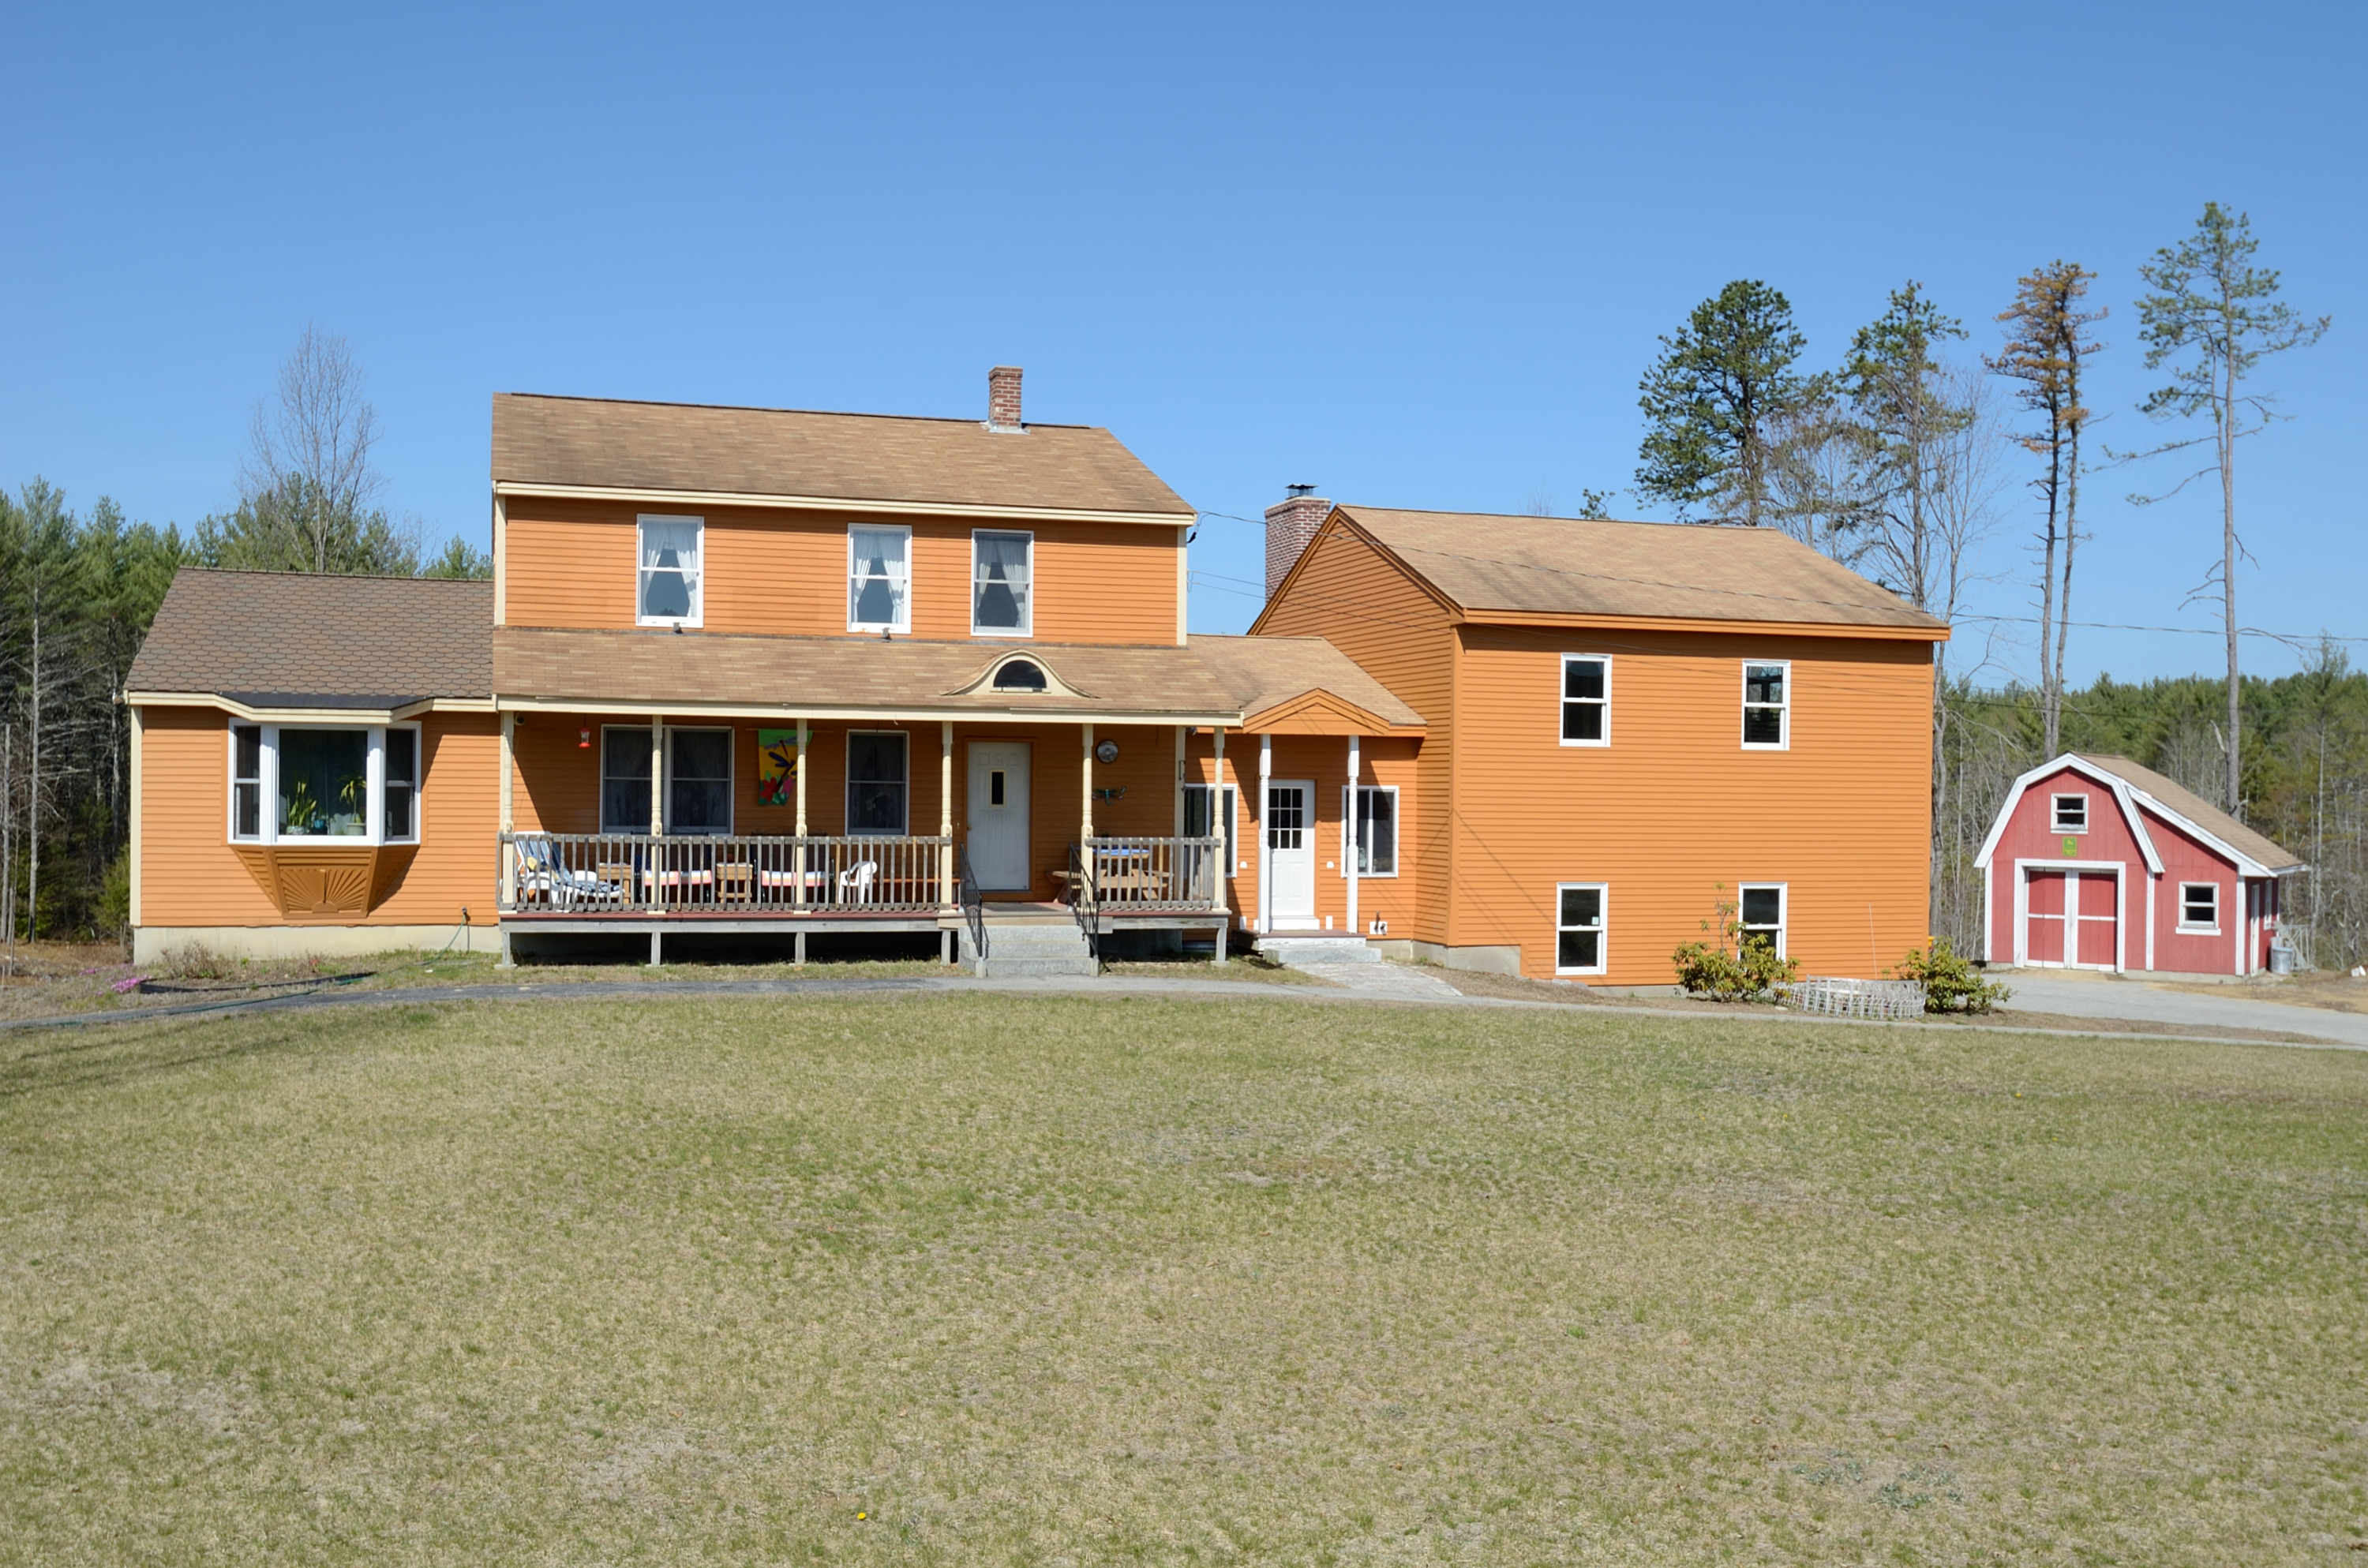 Single Family Home for Sale at 74 Lyndeborough Rd, New Boston New Boston, New Hampshire, 03070 United States